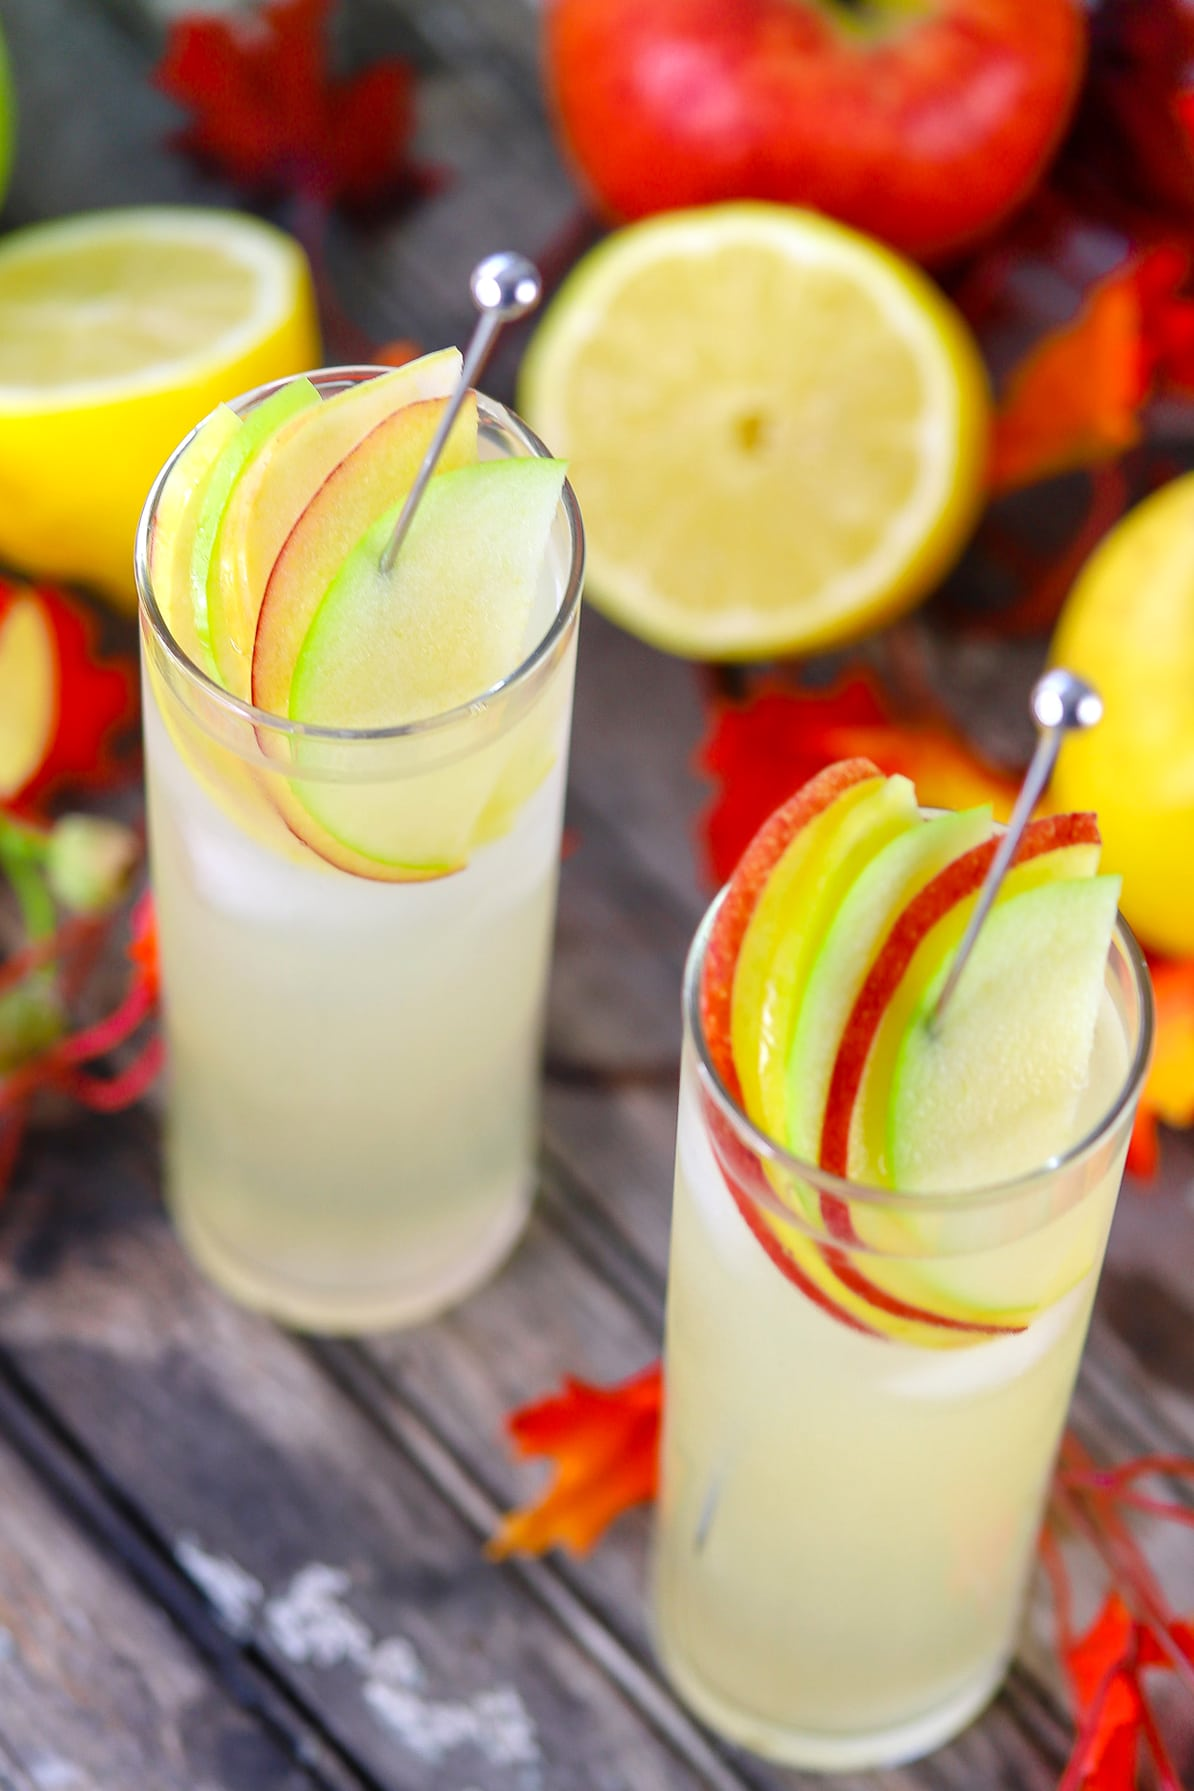 Hard lemonade in glass garnished with apple slices on a stainless steel drink stirrer